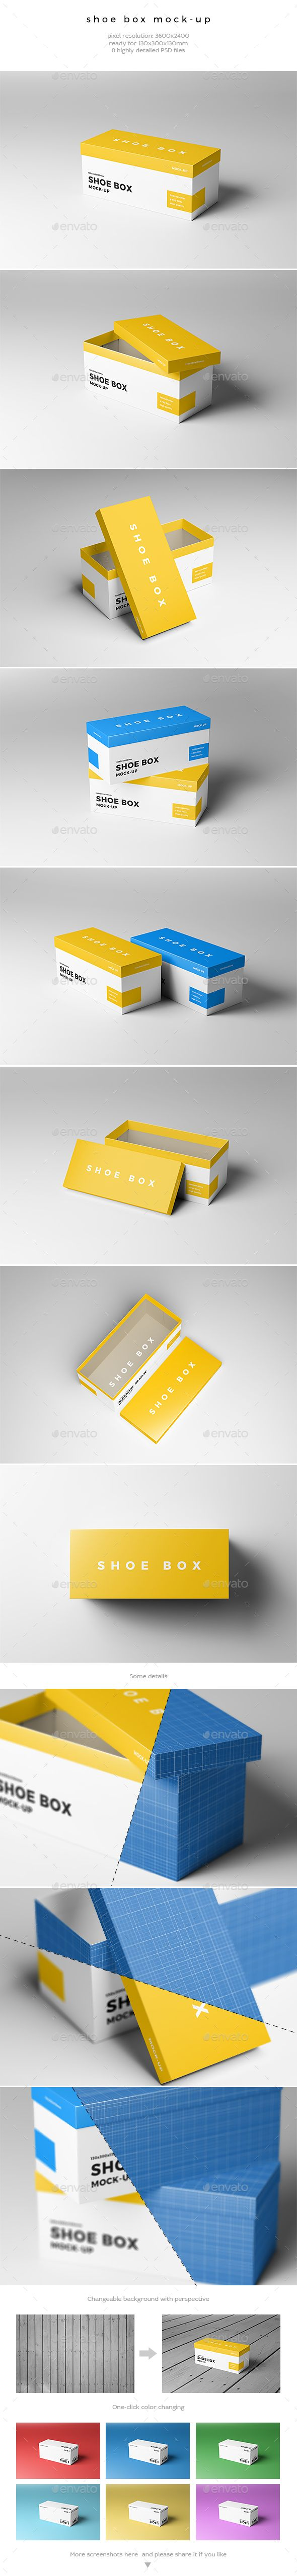 Shoe Box #Mock-Up - #Miscellaneous #Packaging Download here:  https://graphicriver.net/item/shoe-box-mockup/20320077?ref=alena994